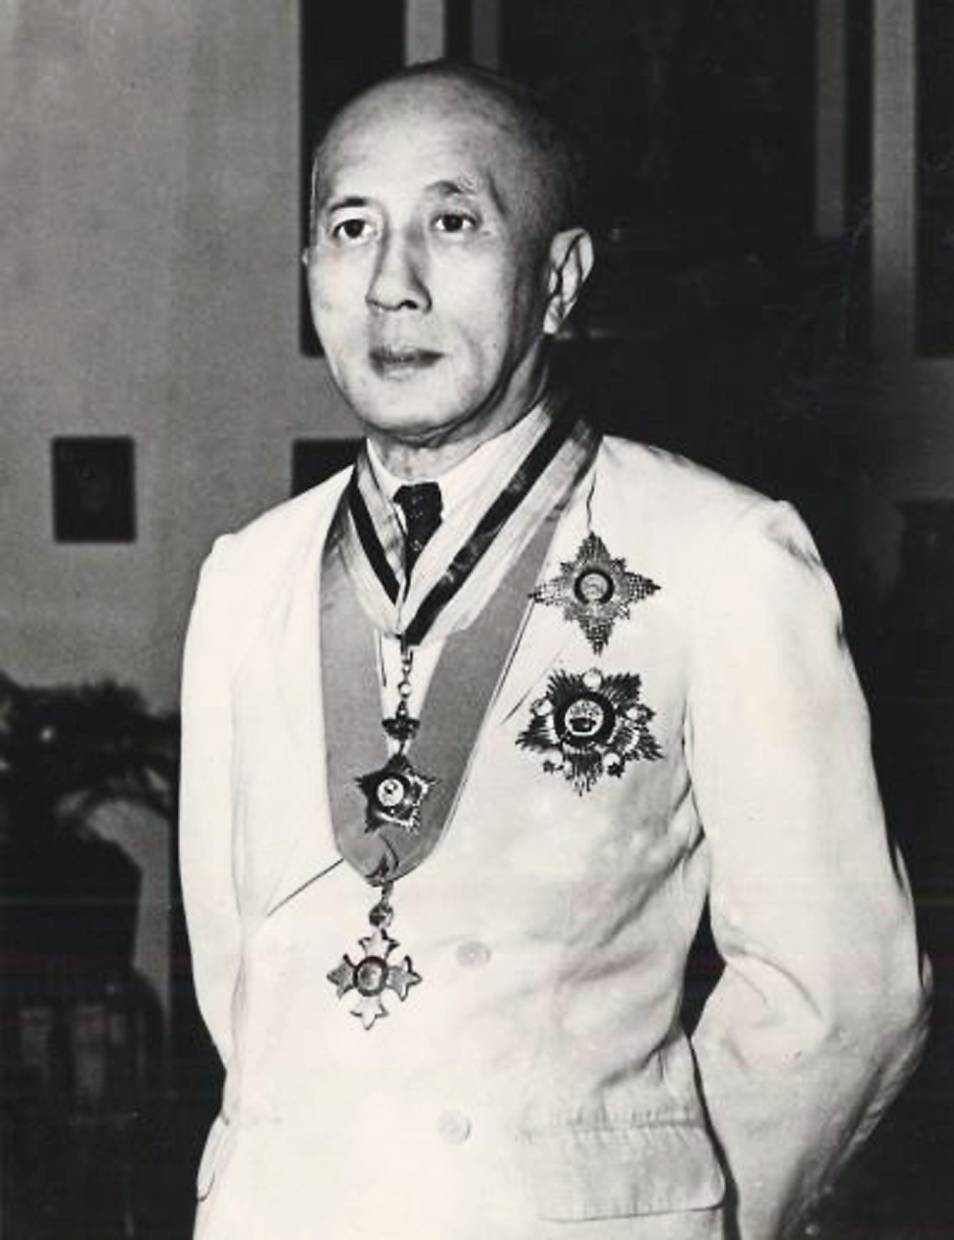 Visionary leader: MCA's founder and one of the country's founding fathers, Tun Tan Cheng Lock, was a well-known statesman with a heart for the people.